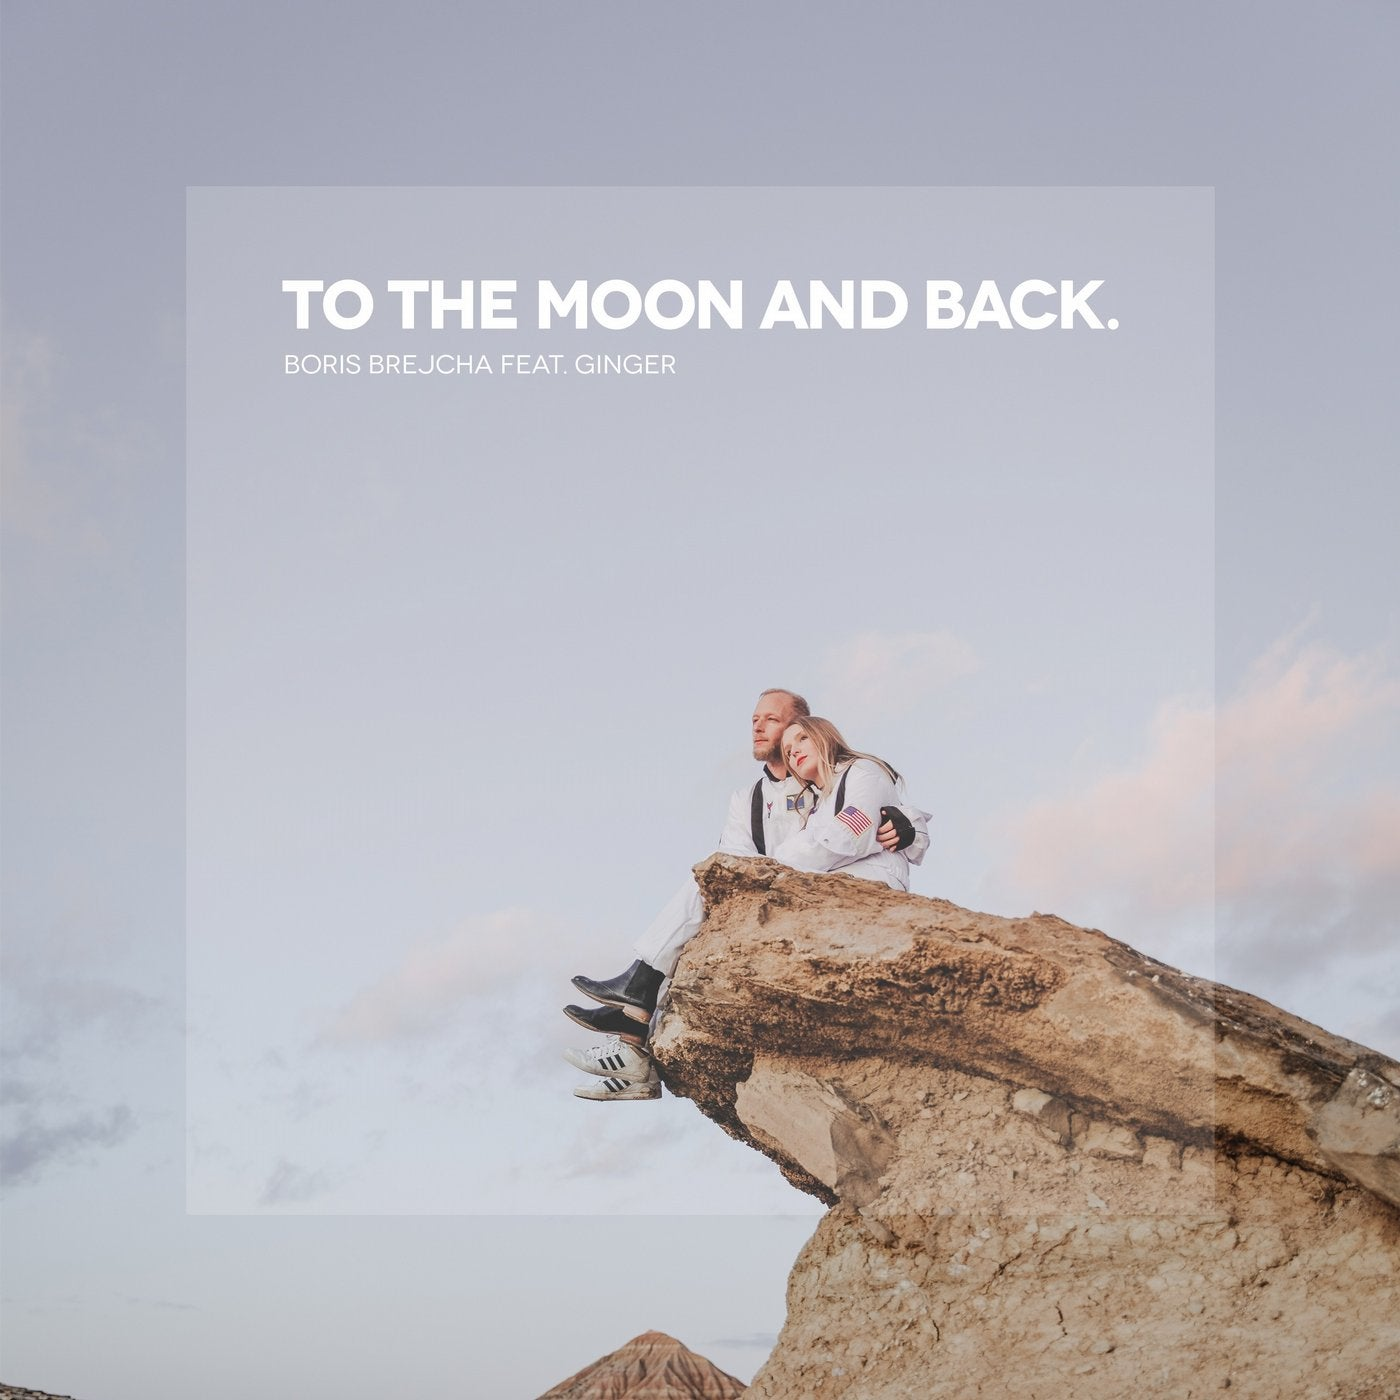 To The Moon And Back feat. Ginger (Original Mix)